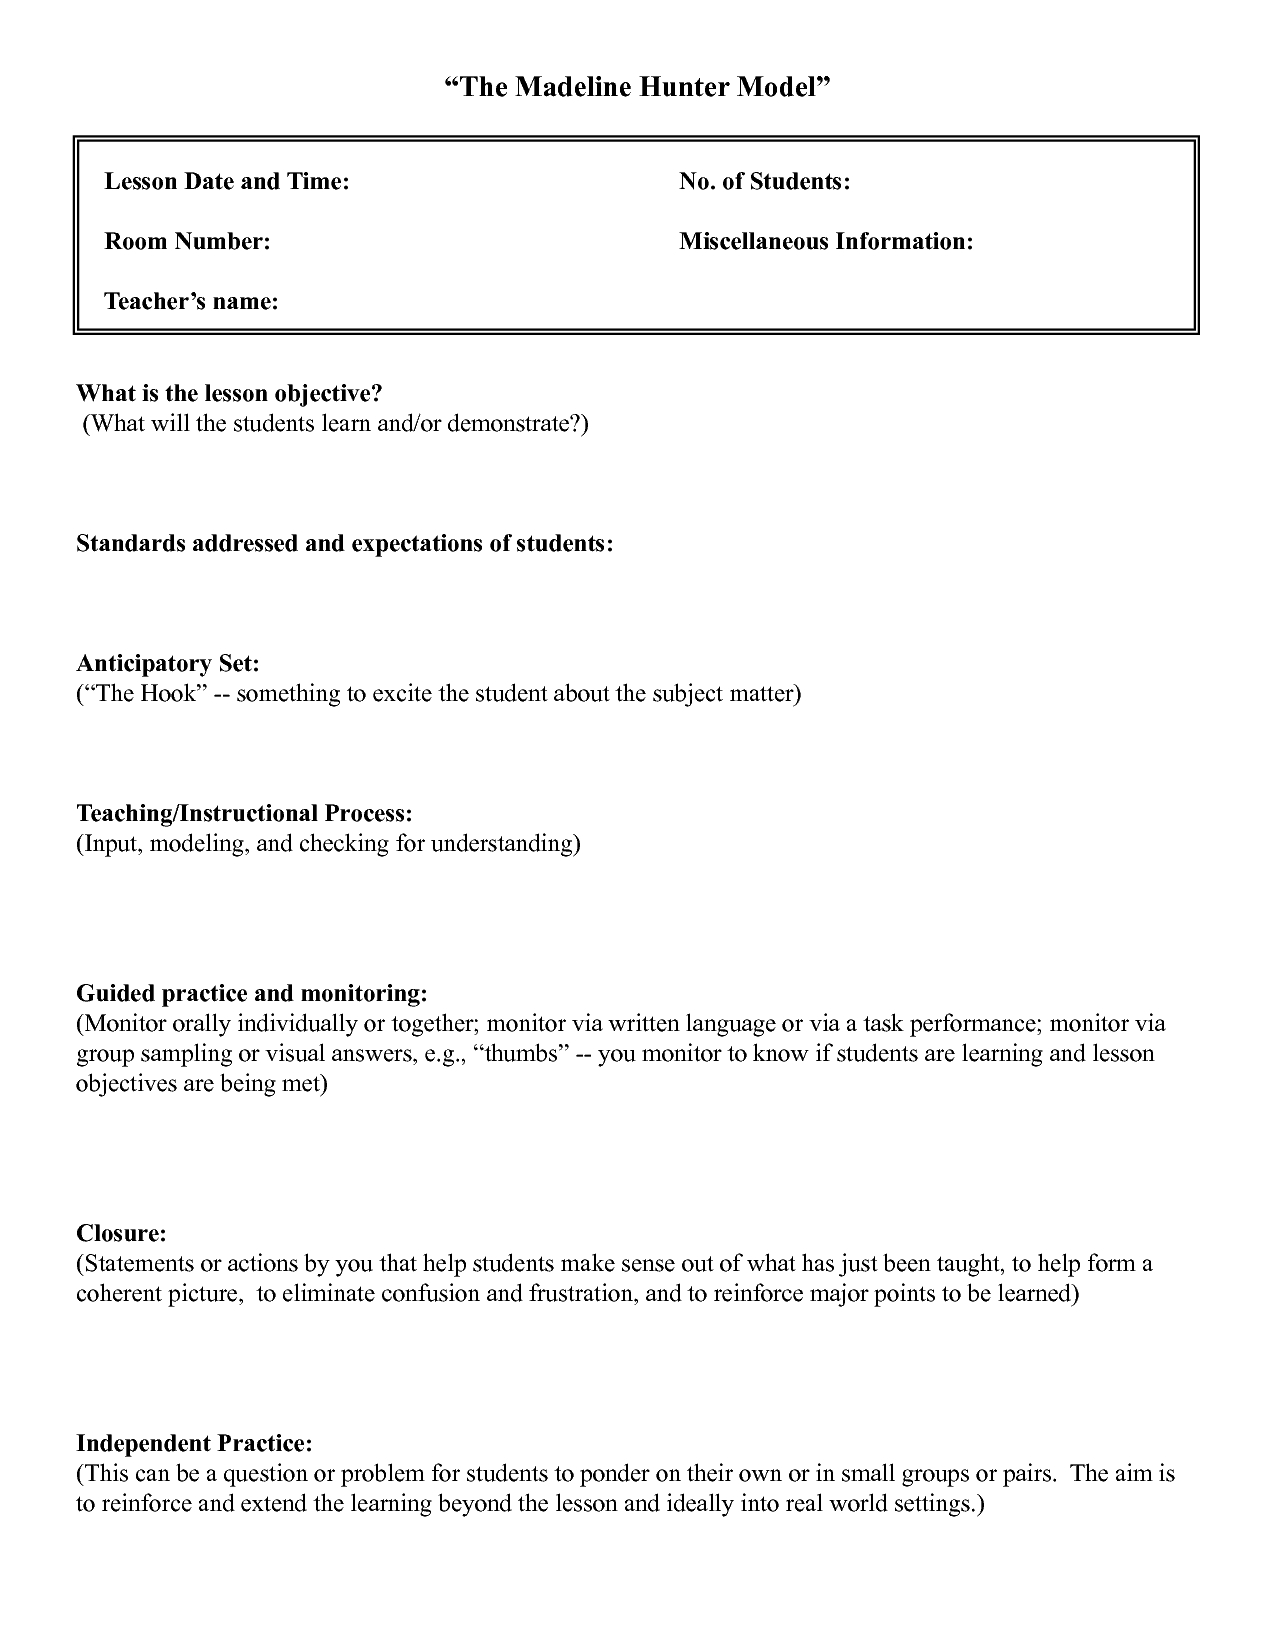 Madeline Hunter Lesson Plan Template Twiroo Com  Lesson Plan In Madeline Hunter Lesson Plan Blank Template